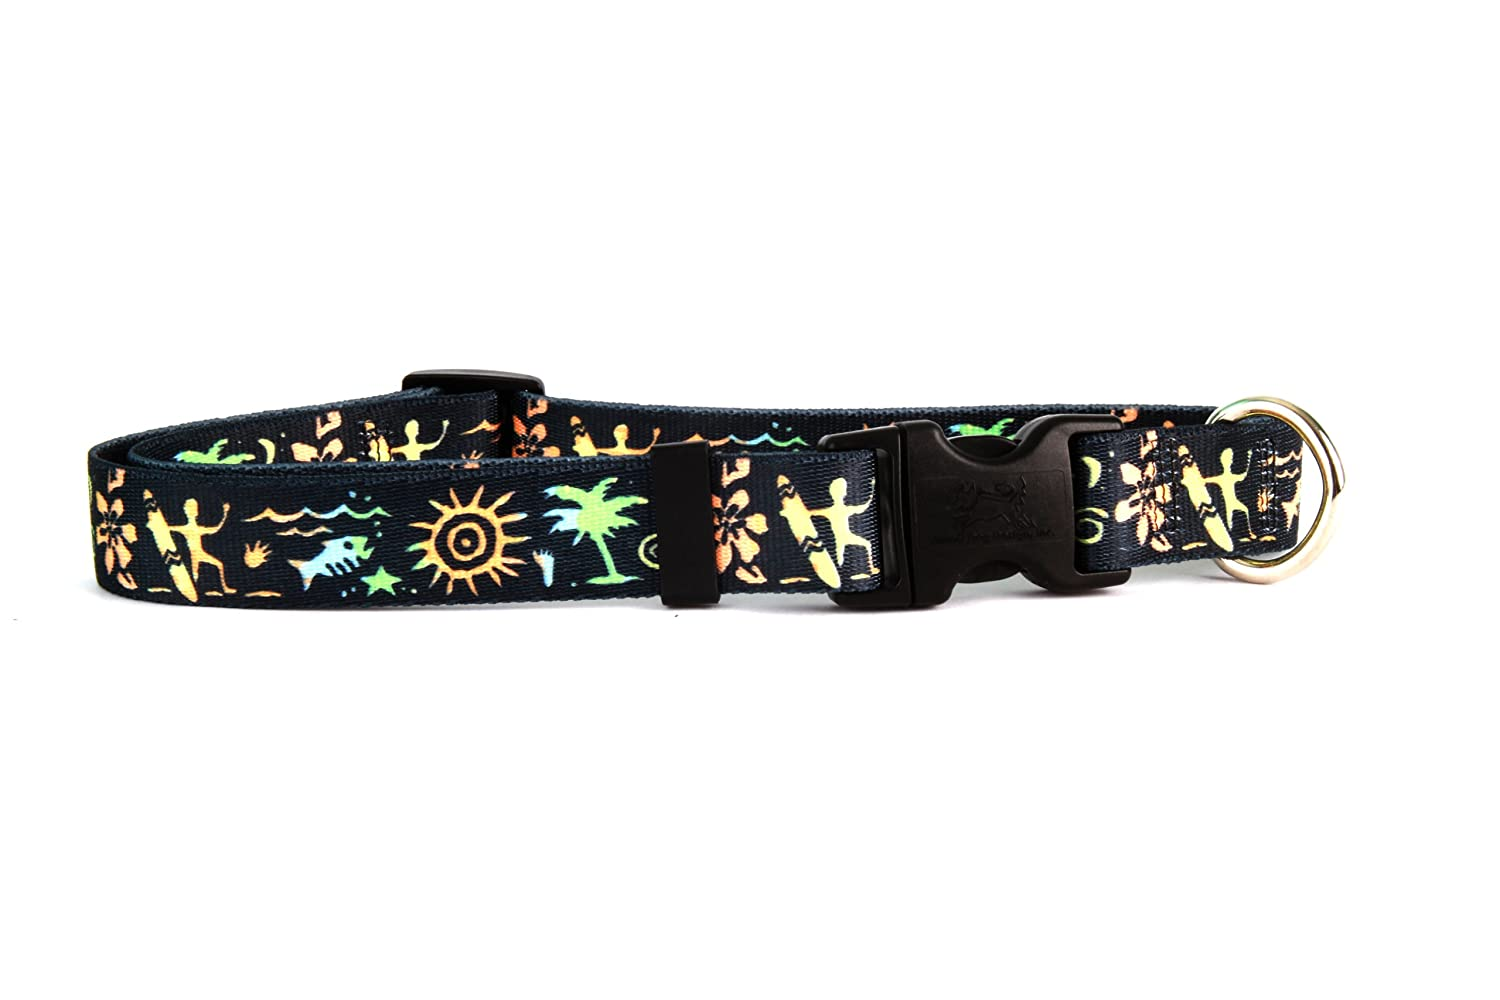 L Primitive Surfer Dog Collar Size Large 18  to 28  Long Made in The USA